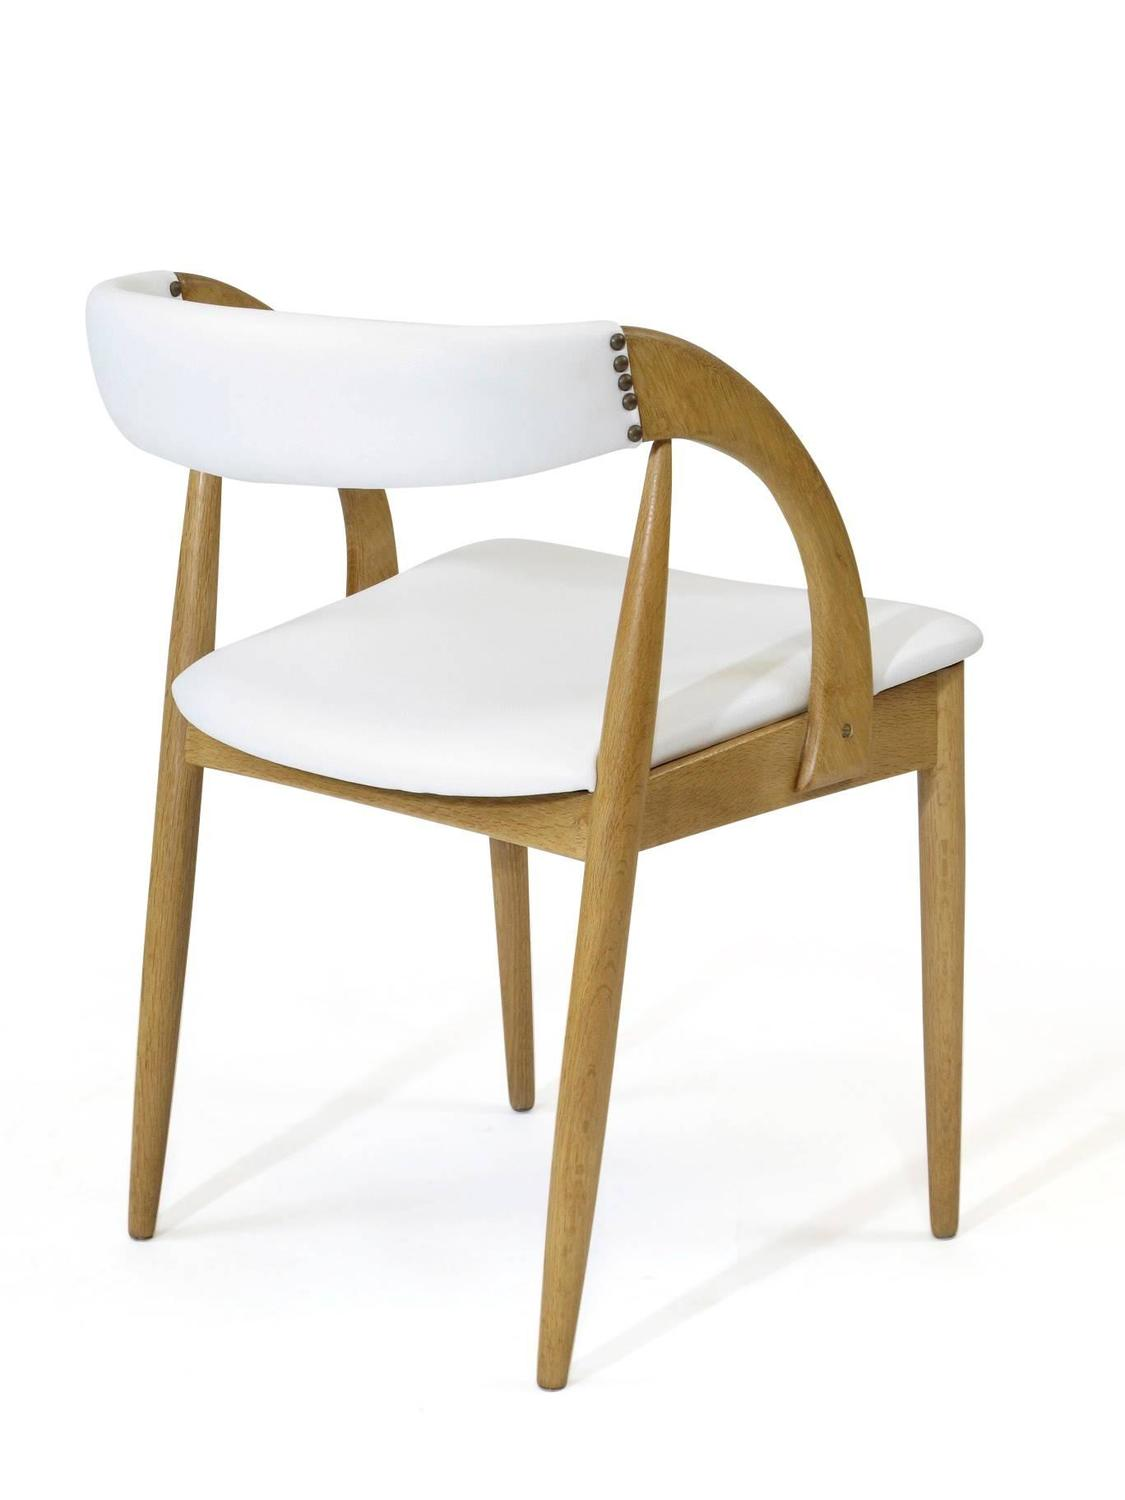 oak and white dining chairs pink chair covers ikea four in leather for sale at